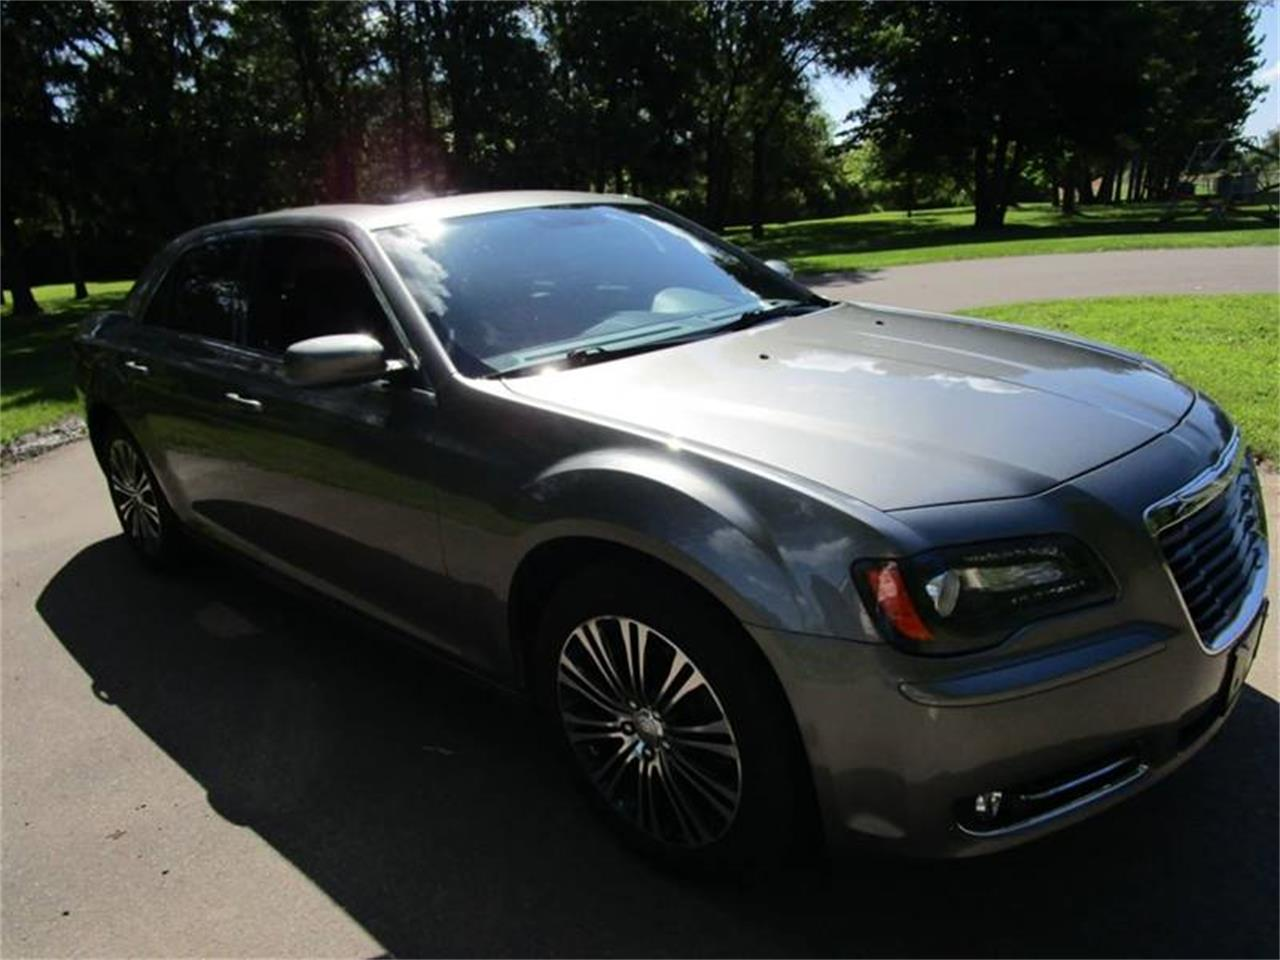 2012 Chrysler 300 for sale in Stanley, WI – photo 5